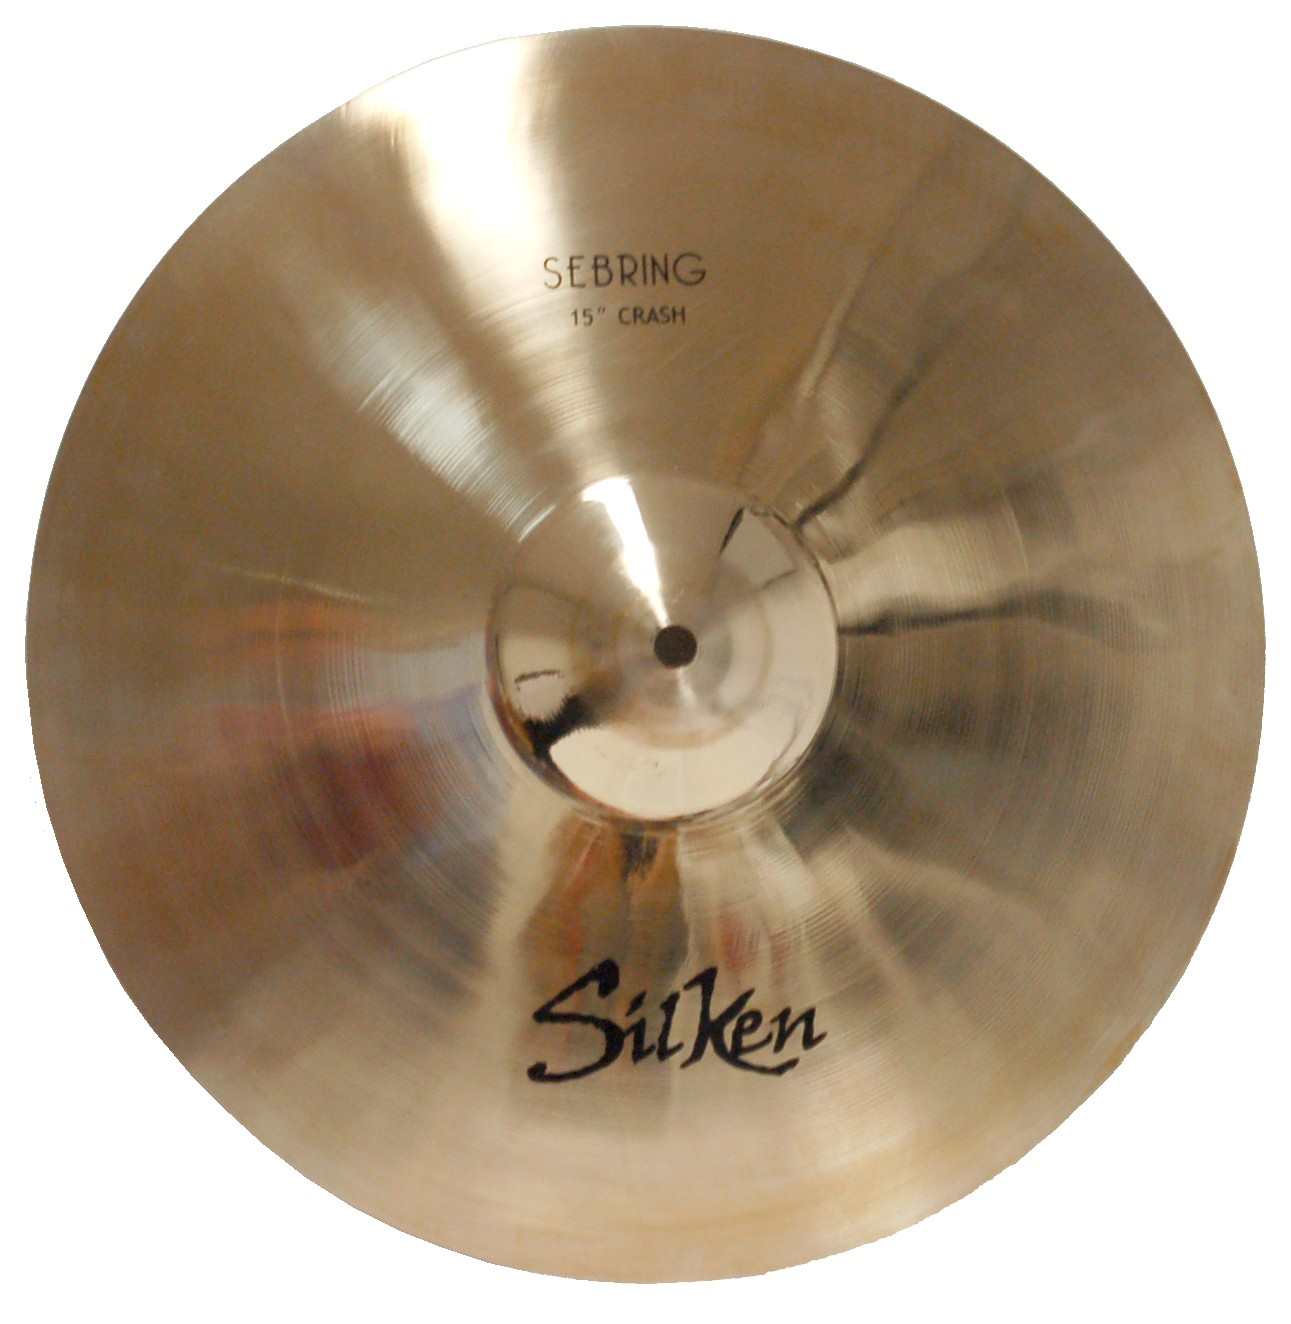 "SILKEN B20 15"" CRASH SEBRING SERIES CYMBAL"